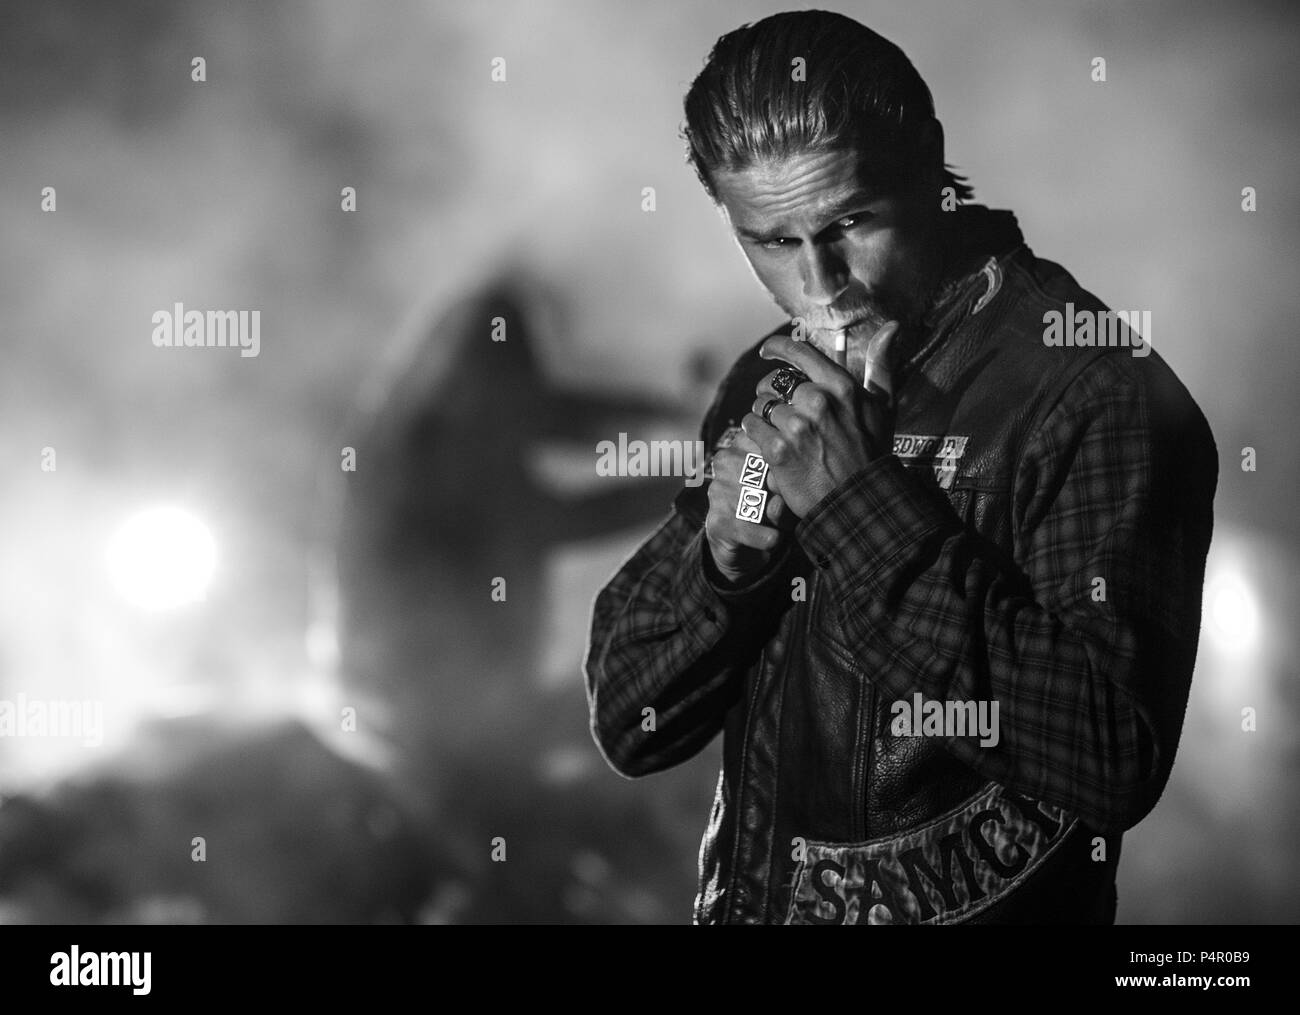 Sons Of Anarchy Hunnam Stock Photos  Sons Of Anarchy -5954